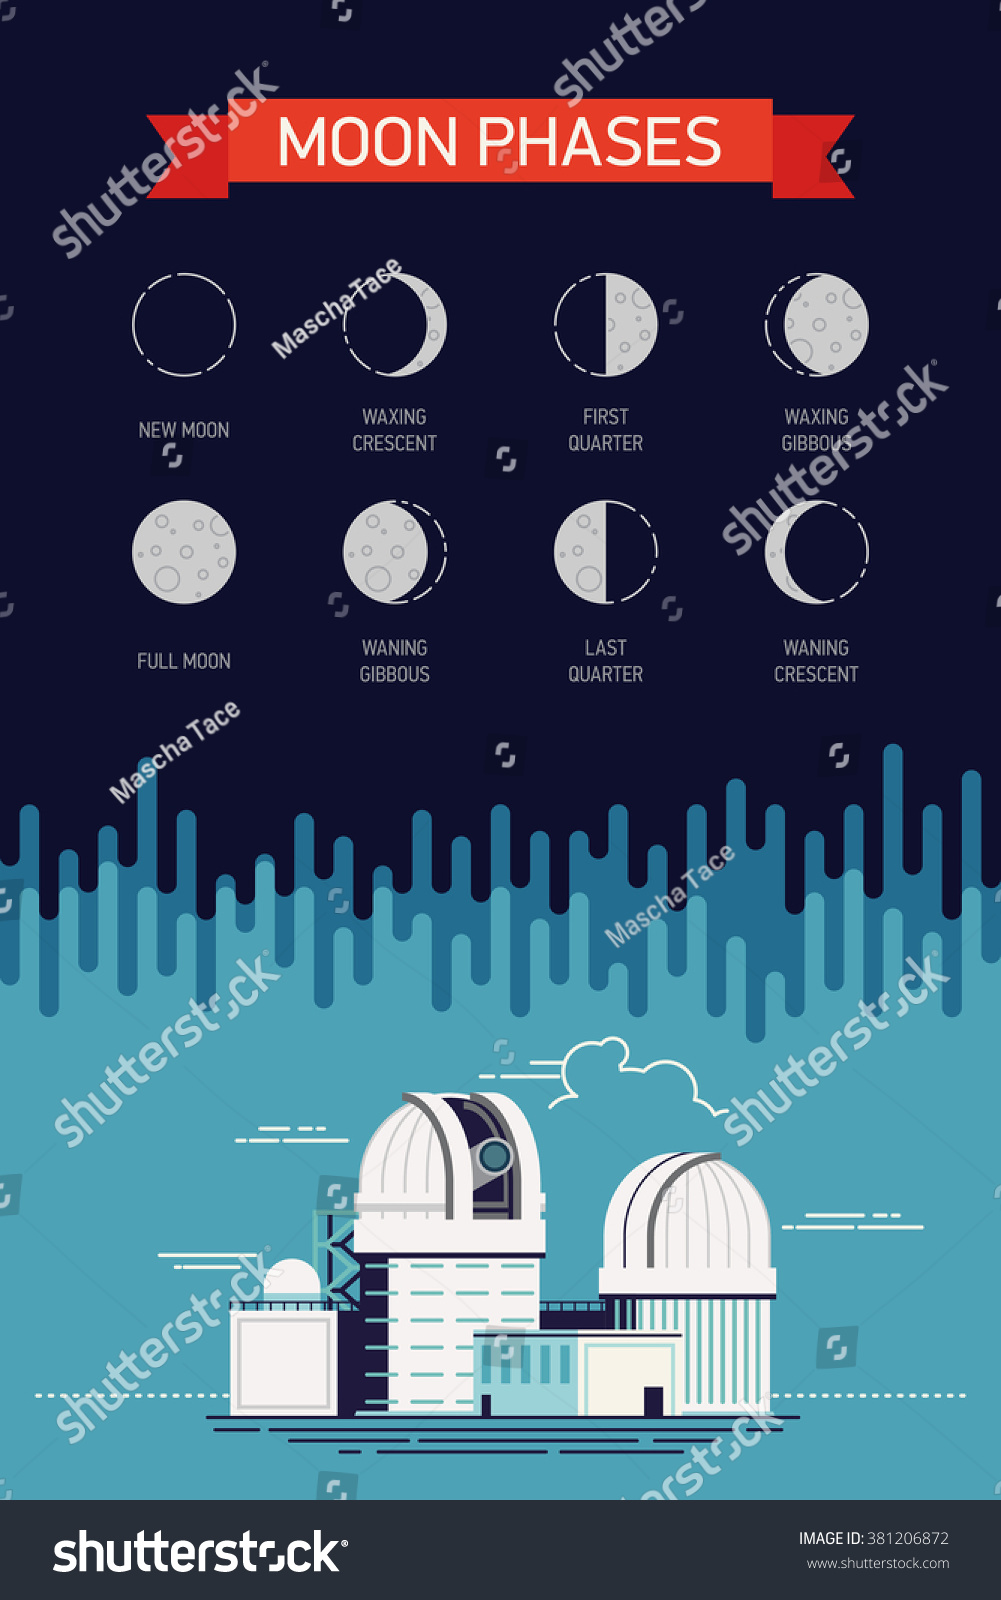 Cool Vector Concept On Moon Phases Stock Royalty Free Diagram Phase With Names Lovely Astronomy Educational Illustration Observatory Planetarium